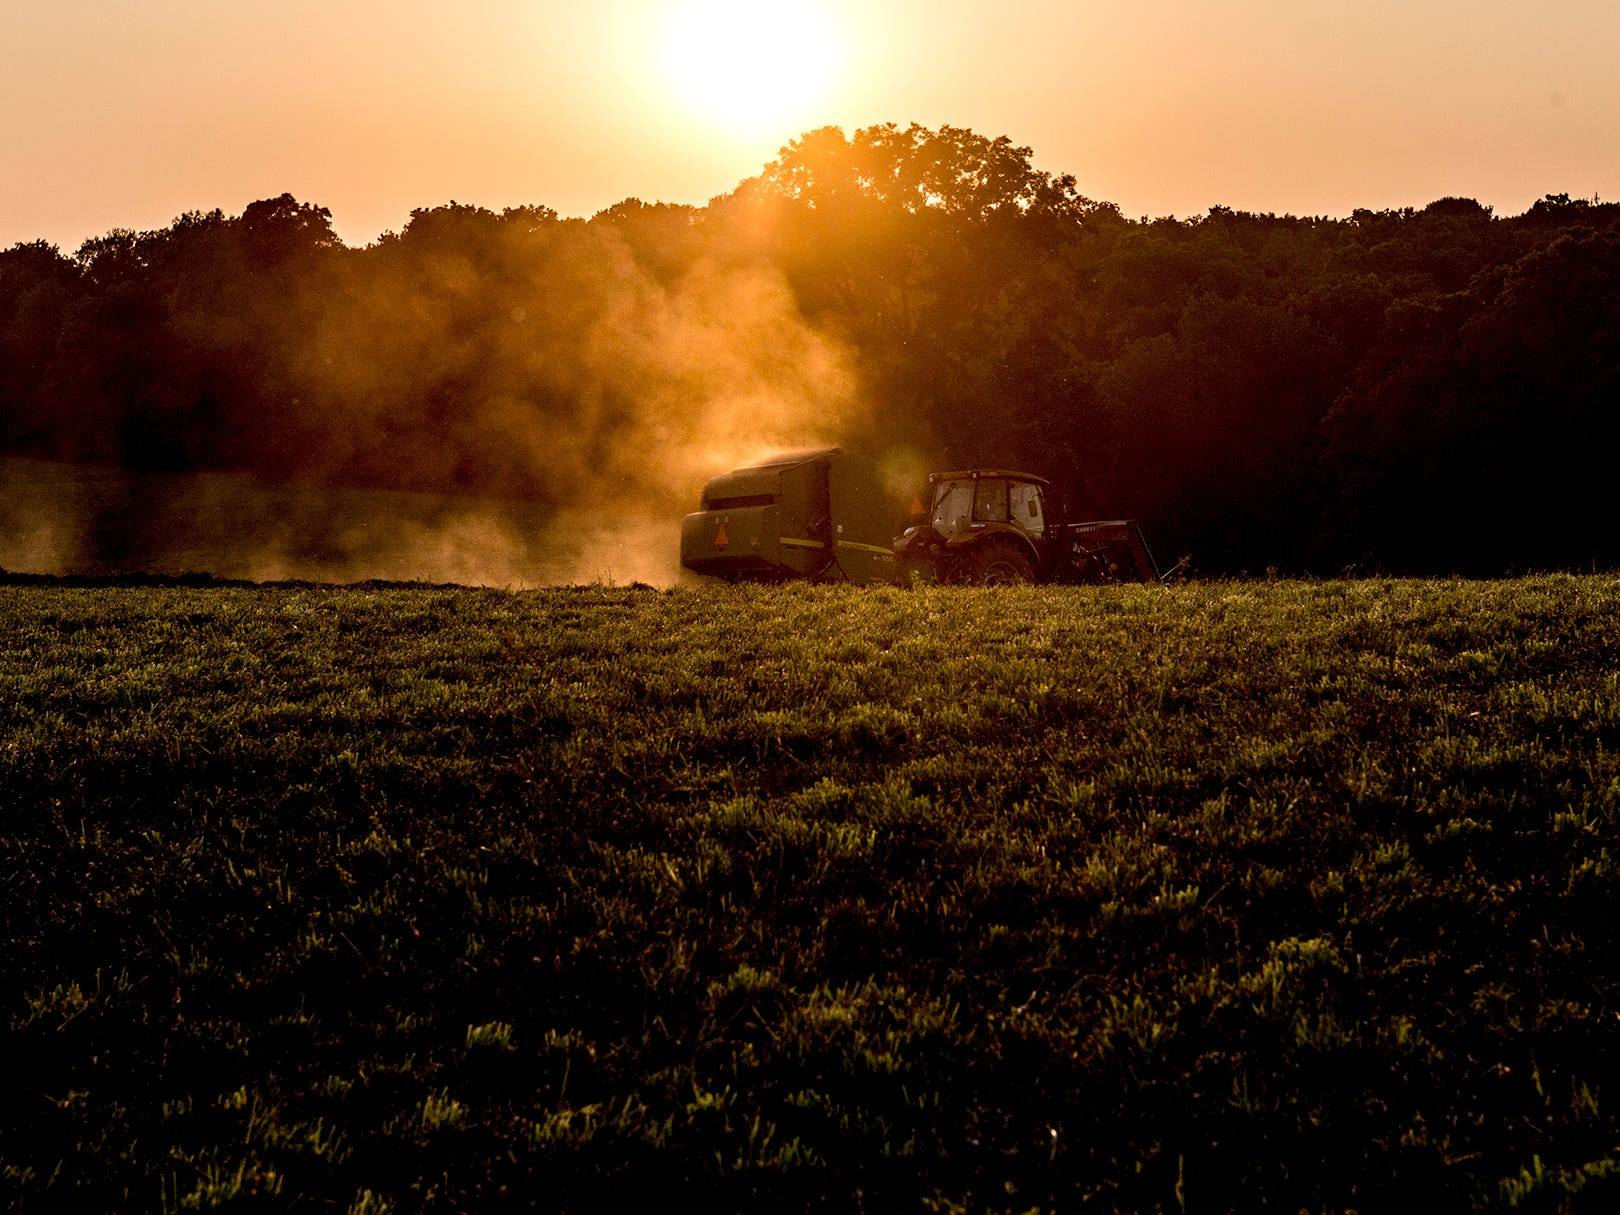 Bailing hay as the sun sets over Utica. This year there were hay shortages bumping the price up for farmers selling. This extra bit of income helped offset losses from the falling price of soy beans due to the trade war with China.